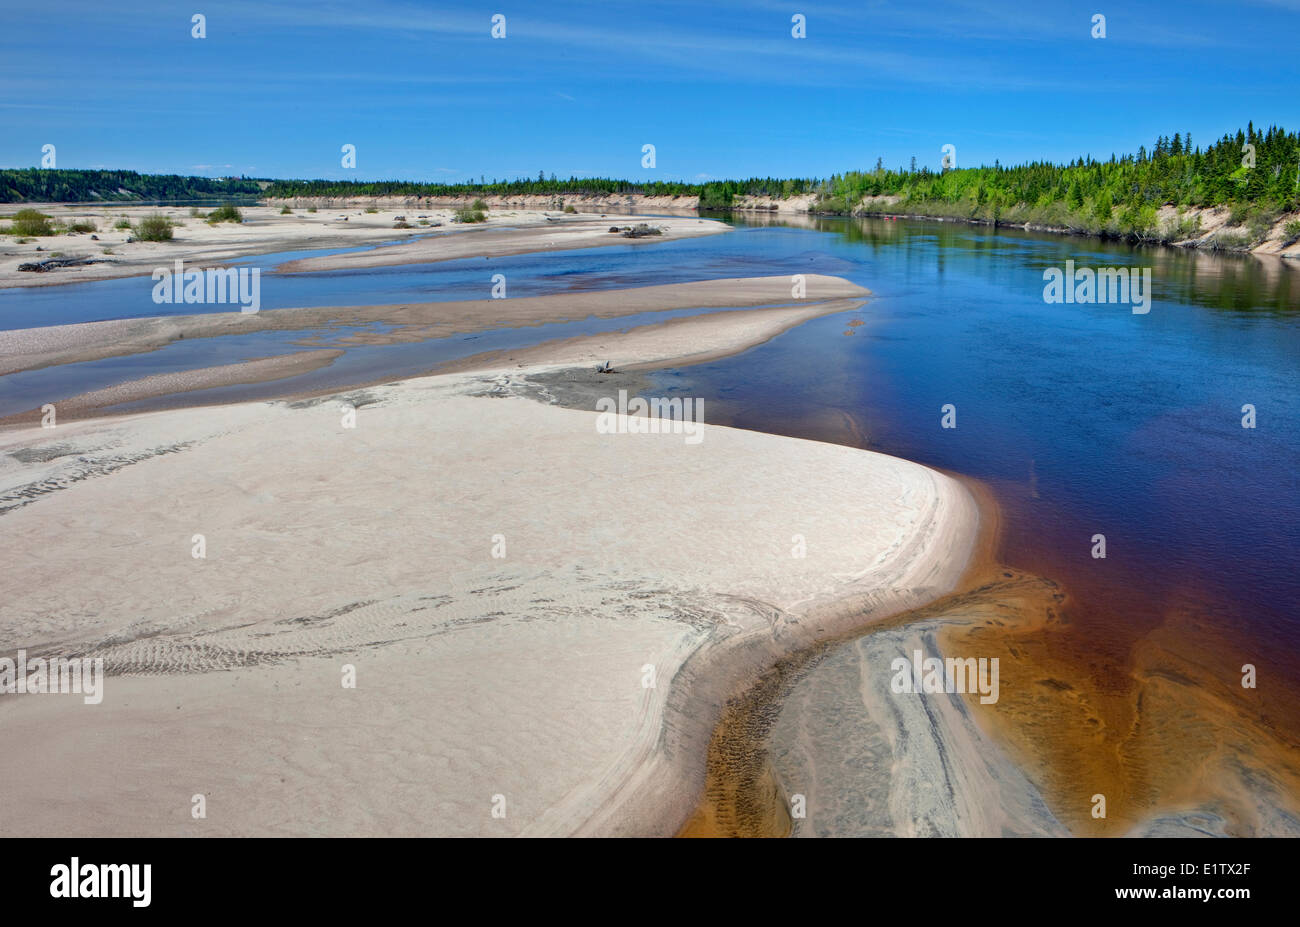 Riviere Pentecoste River, Northshore, St Lawrence, Cote Nord, Quebec, Canada - Stock Image